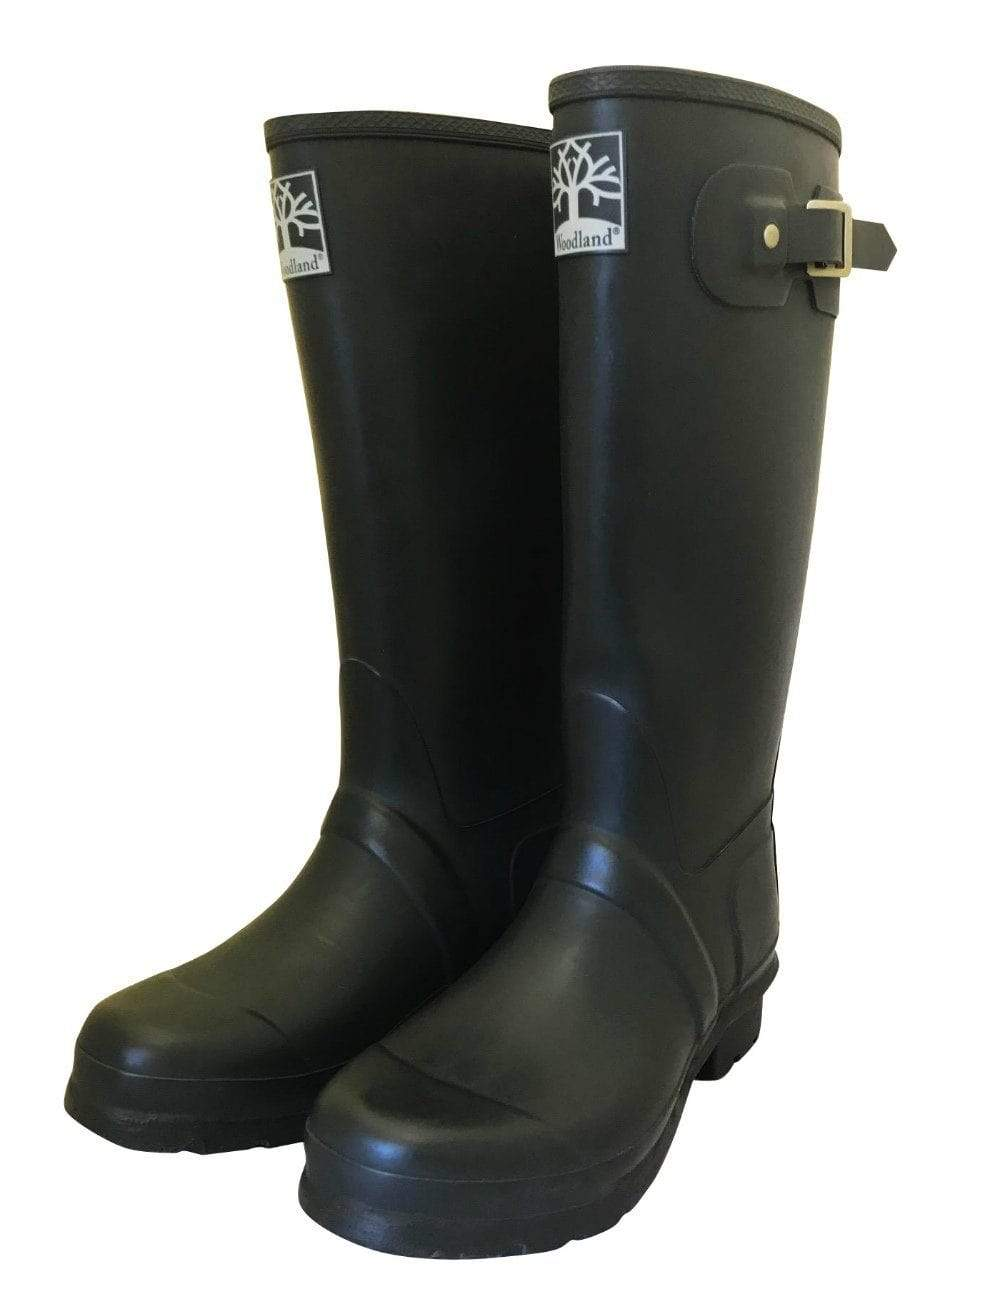 Durable Navy Country Wellies by Woodlands - Wide Calf Wellies for Women